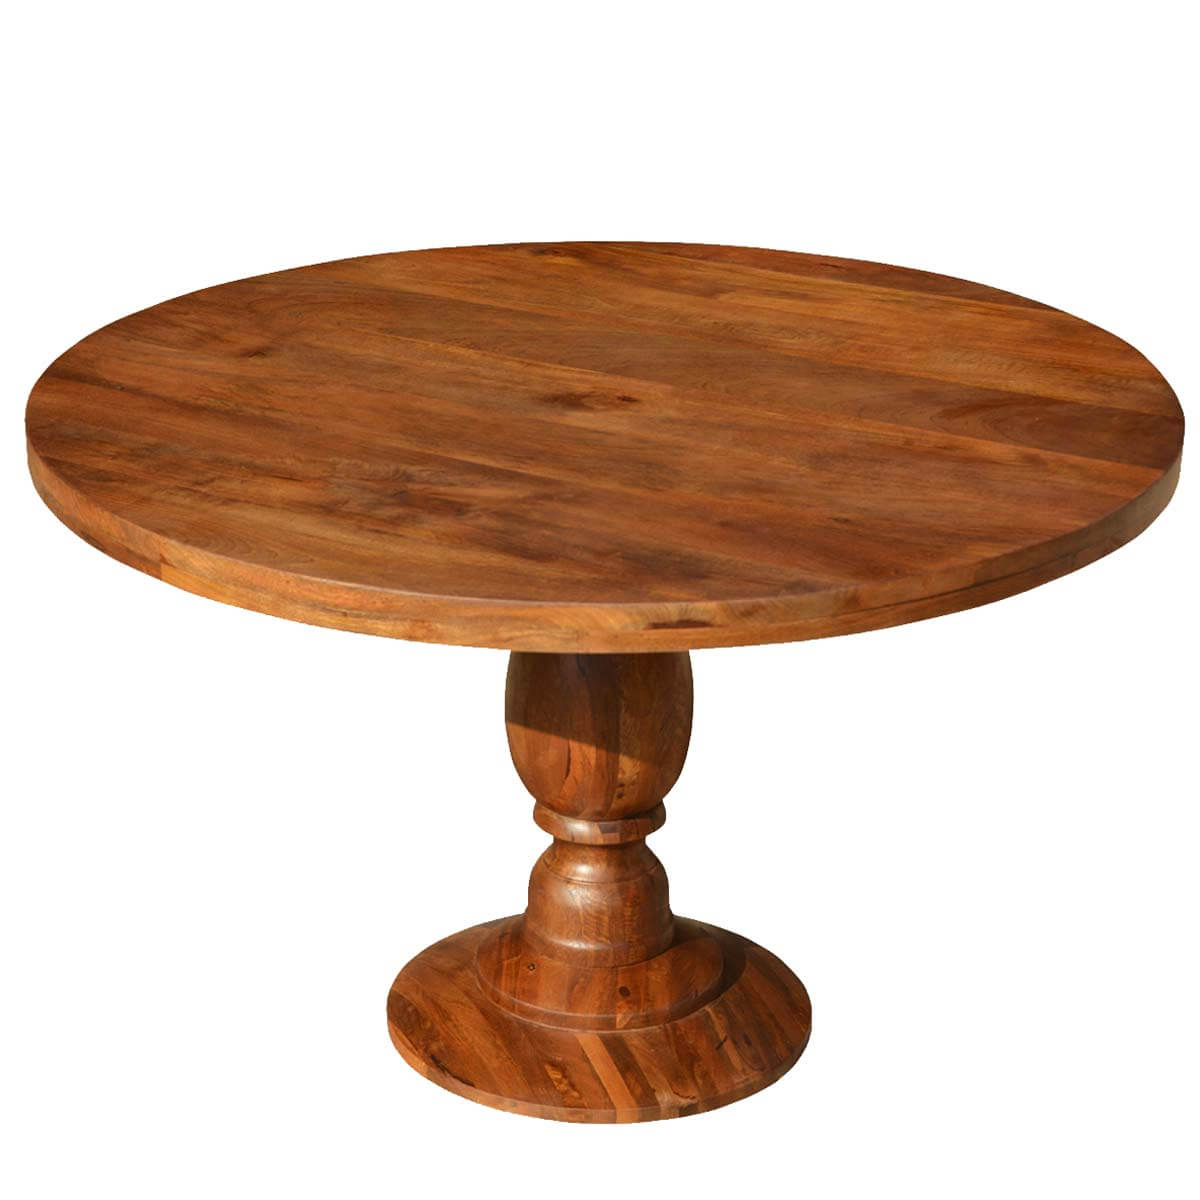 """Tabor 48'' Pedestal Dining Tables Intended For Most Current Rustic Colonial American Solid Wood 48"""" Round Pedestal (View 7 of 20)"""